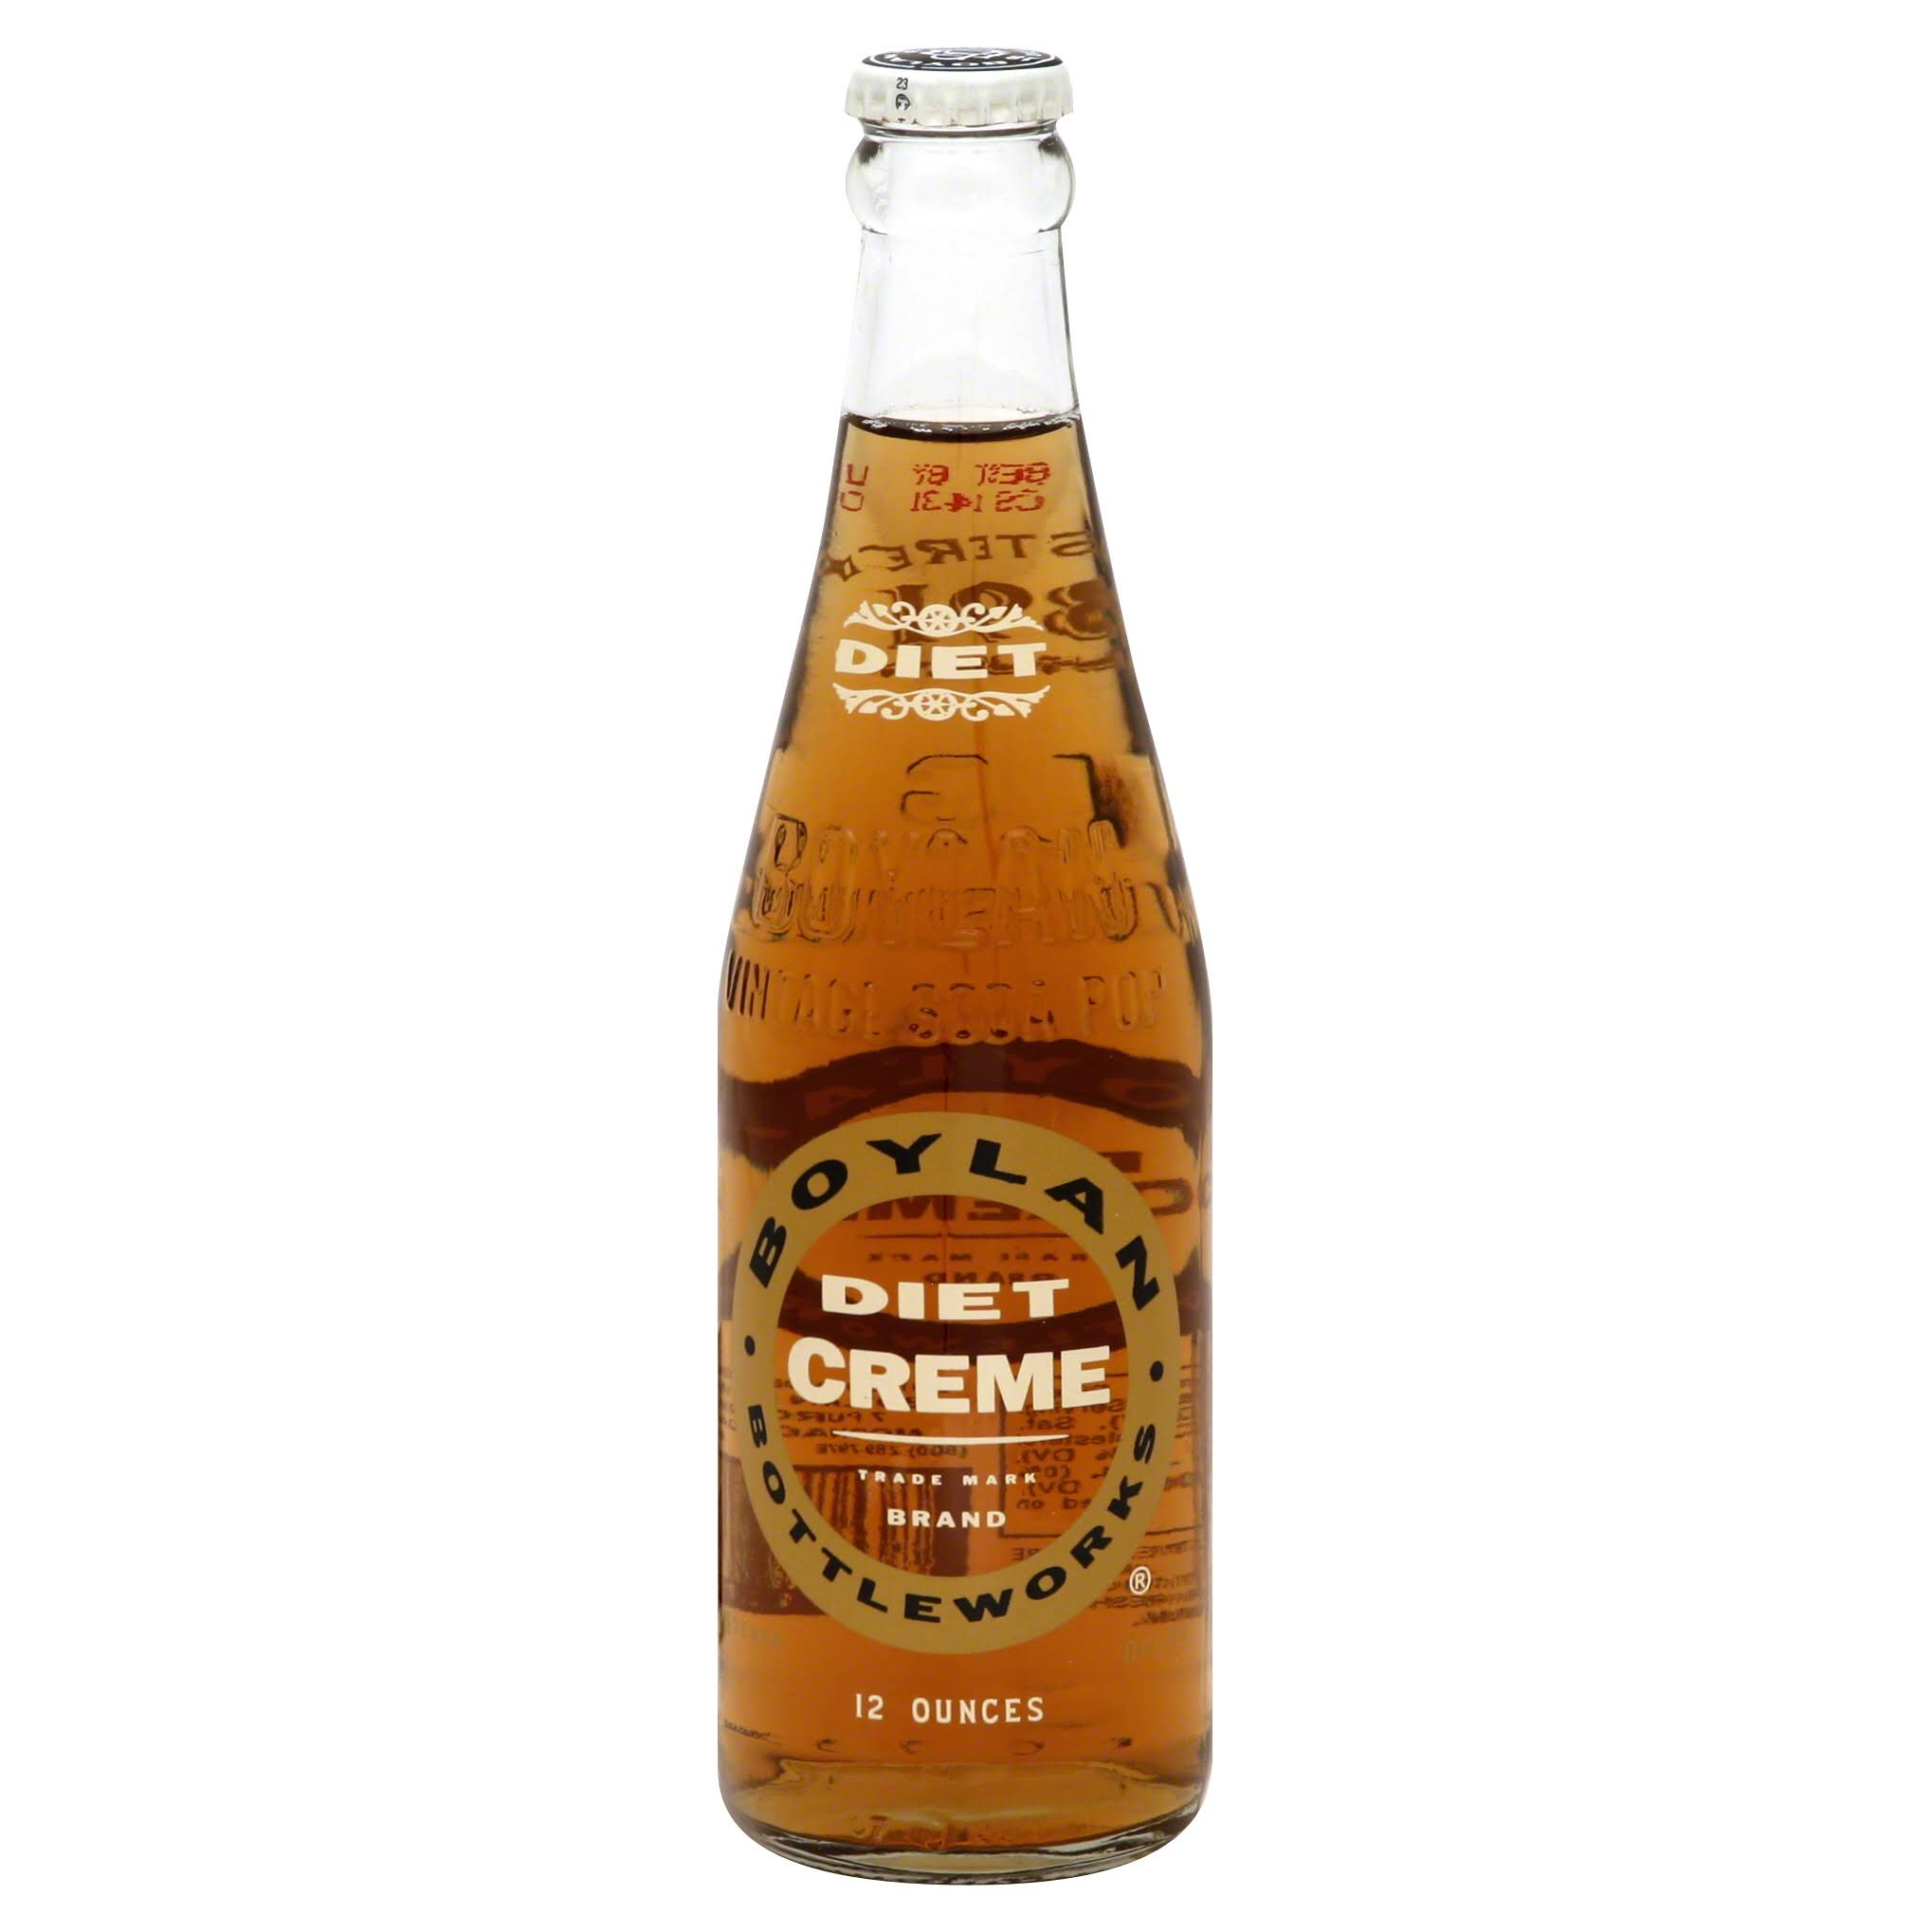 Boylan Diet Creme Soda - 12oz